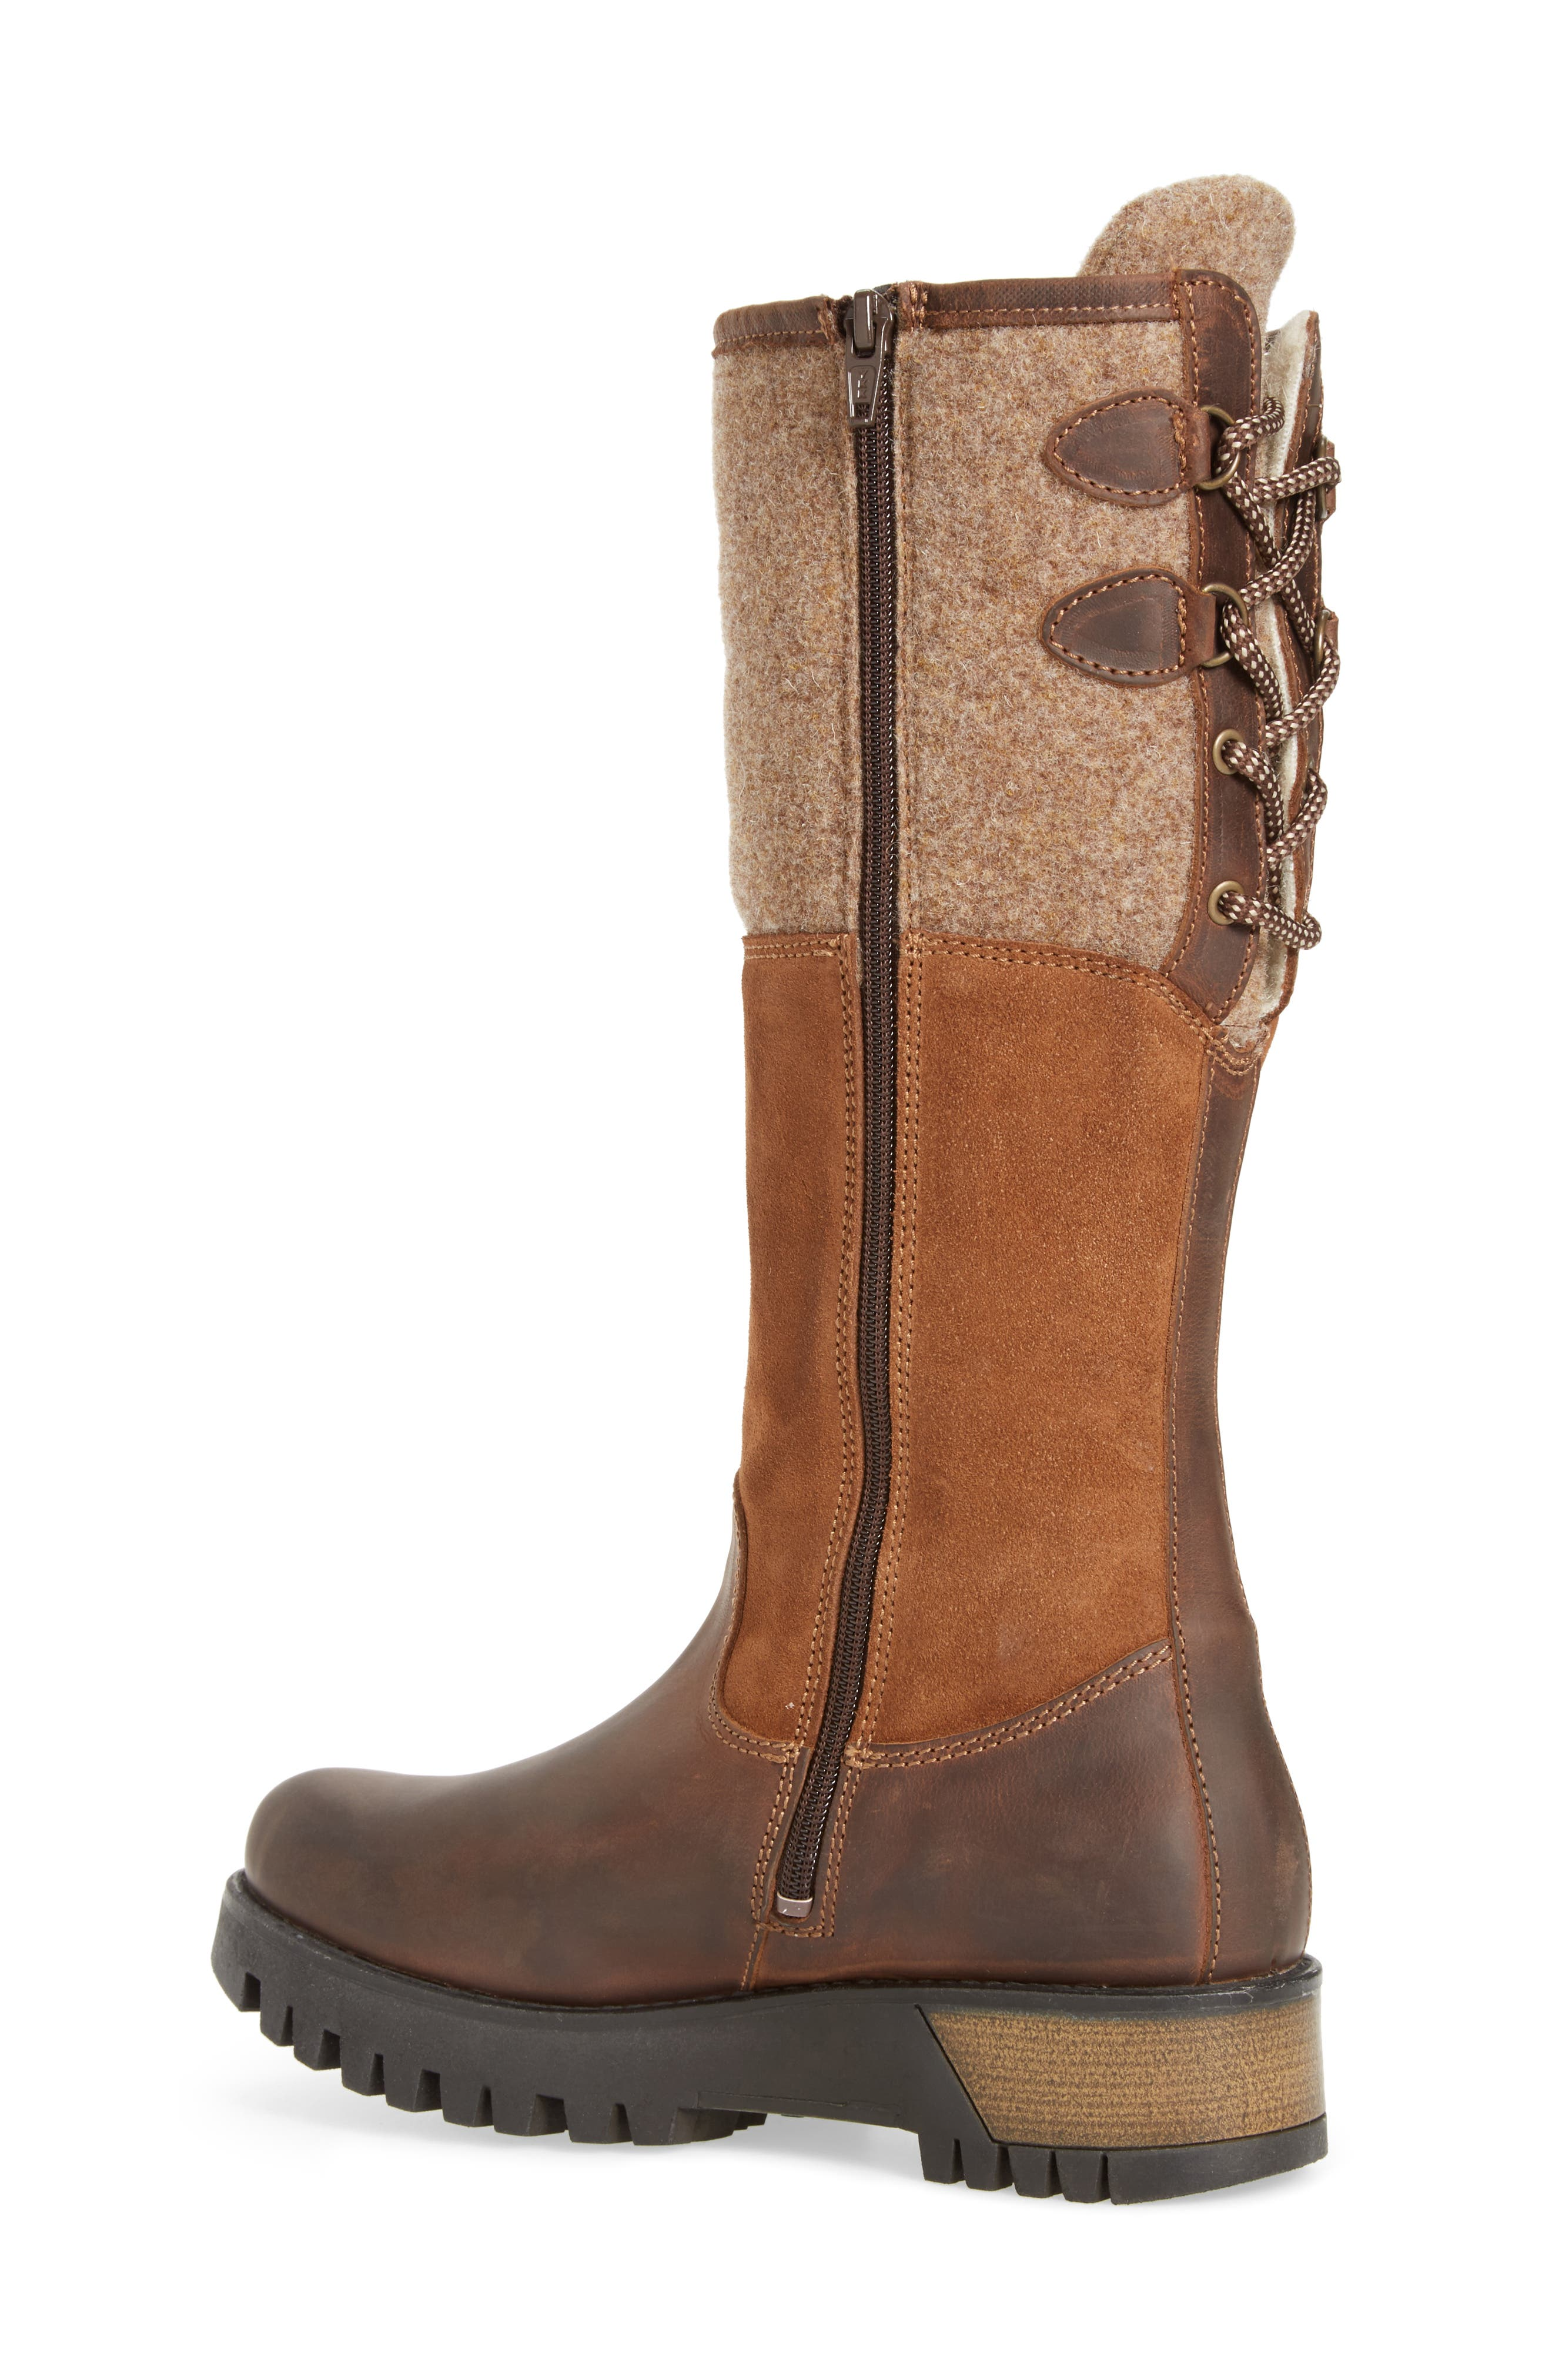 'Ginger' Waterproof Mid Calf Platform Boot,                             Alternate thumbnail 2, color,                             Expresso/ Beige